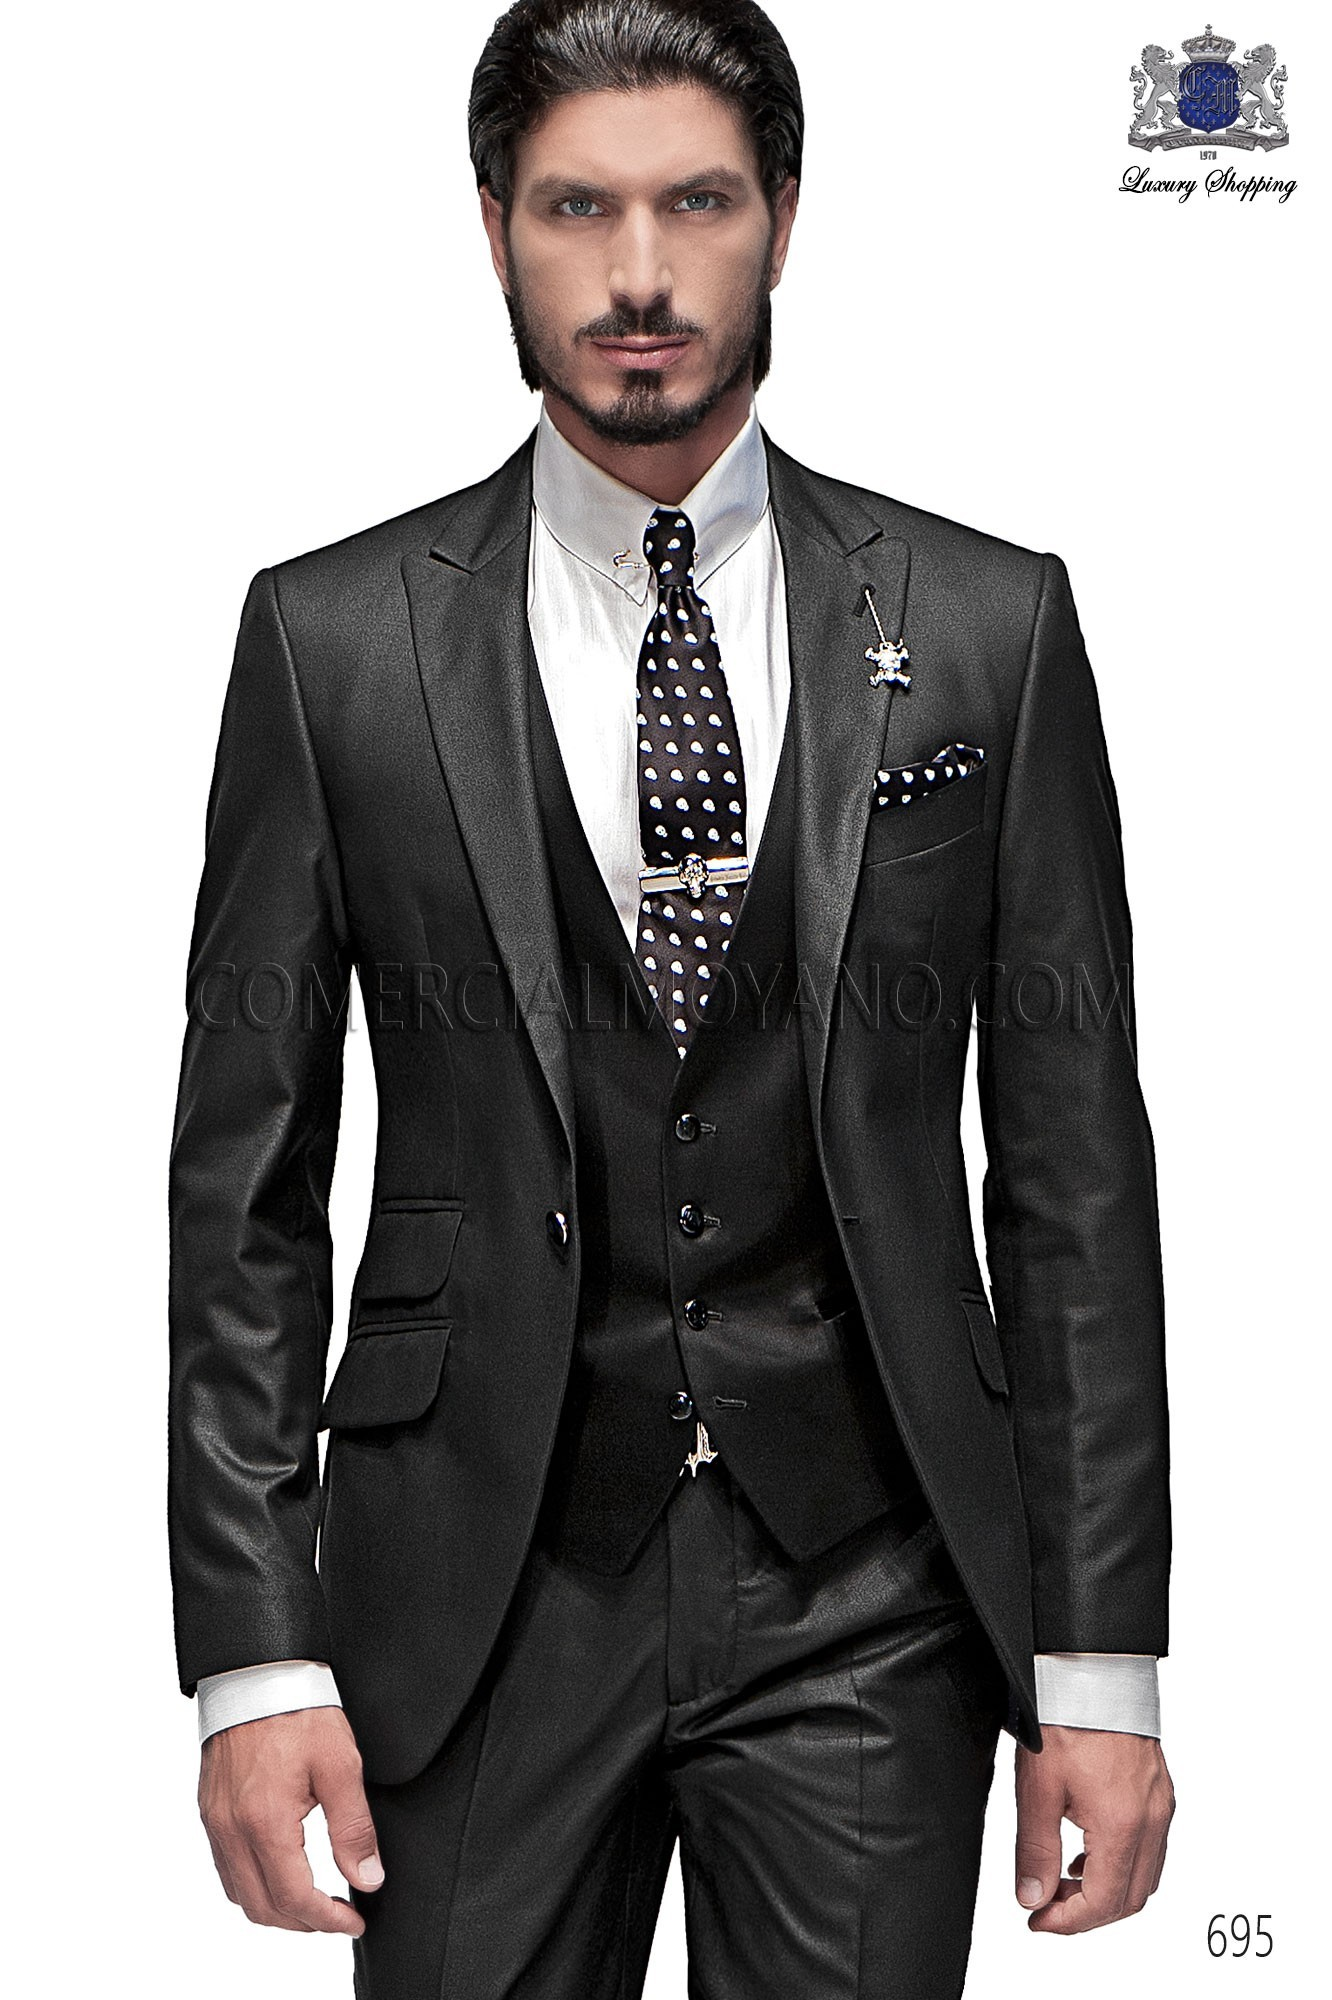 Emotion black men wedding suit model 695 Ottavio Nuccio Gala